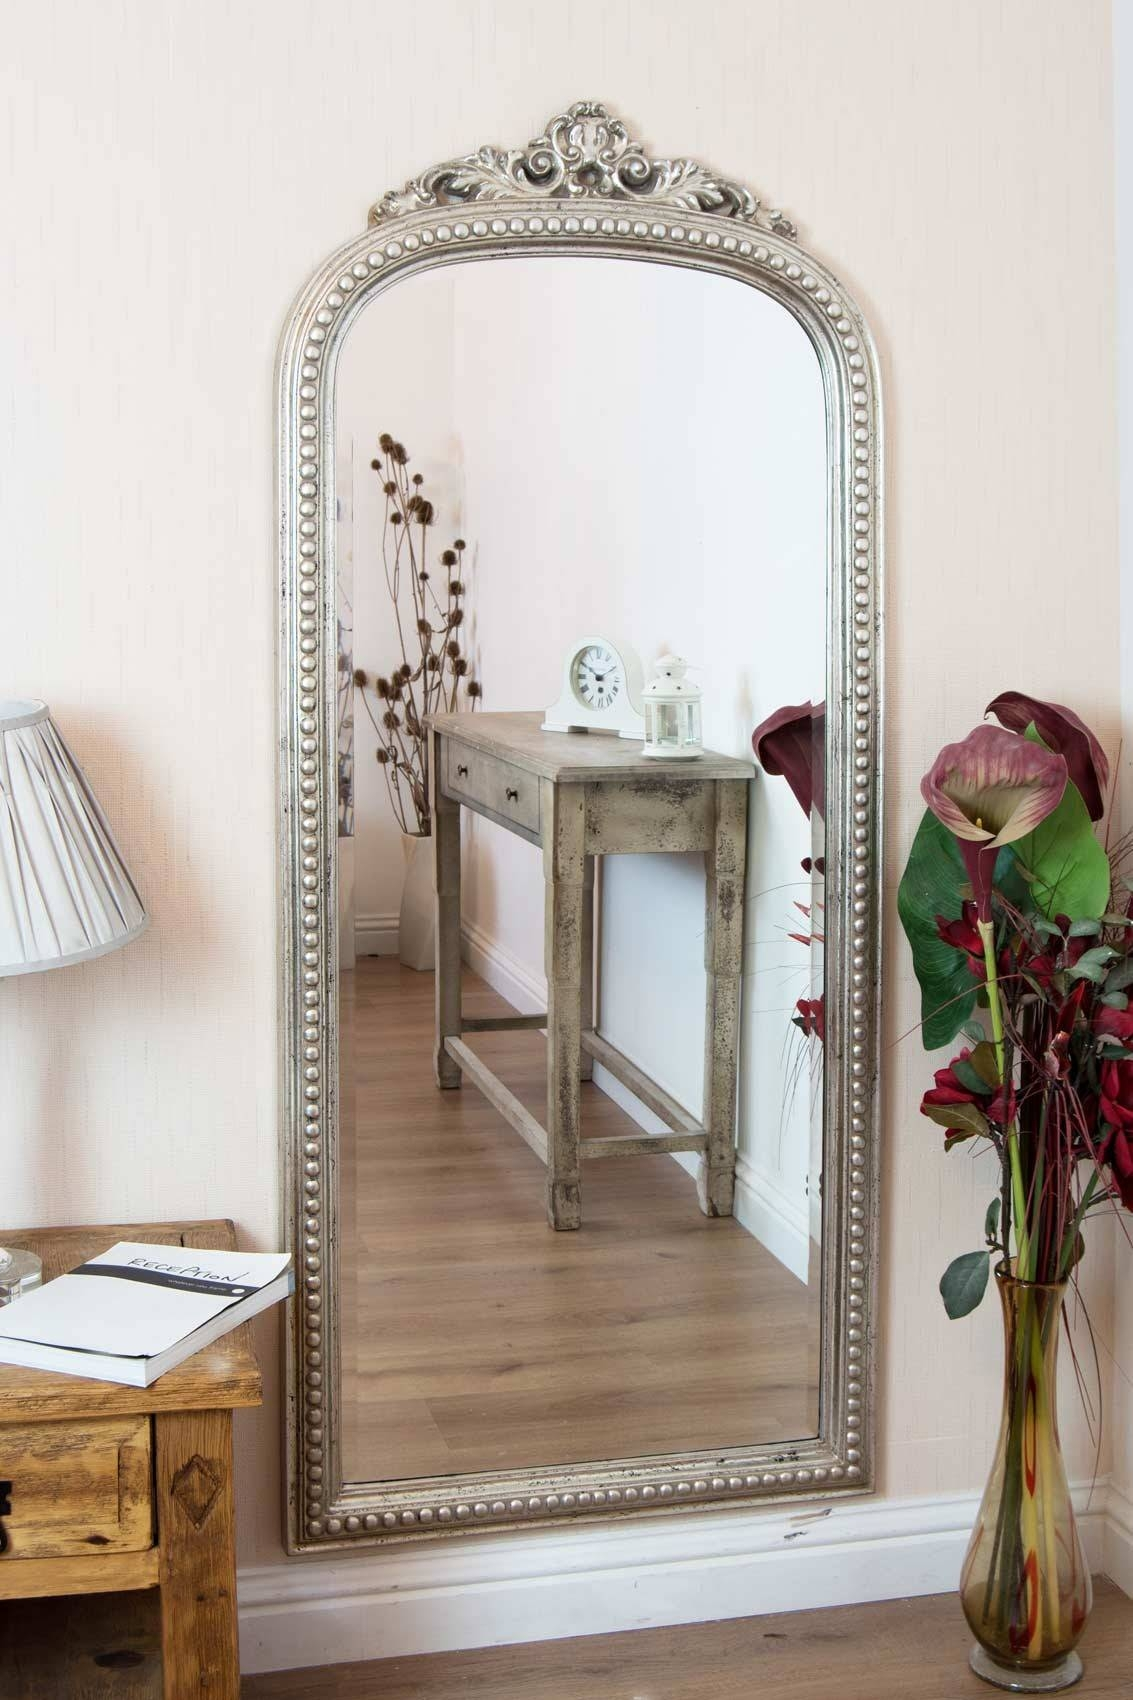 Shabby Chic Wall Mirror 130 Inspiring Style For Fabulous Large with regard to Shabby Chic Large Wall Mirrors (Image 20 of 25)